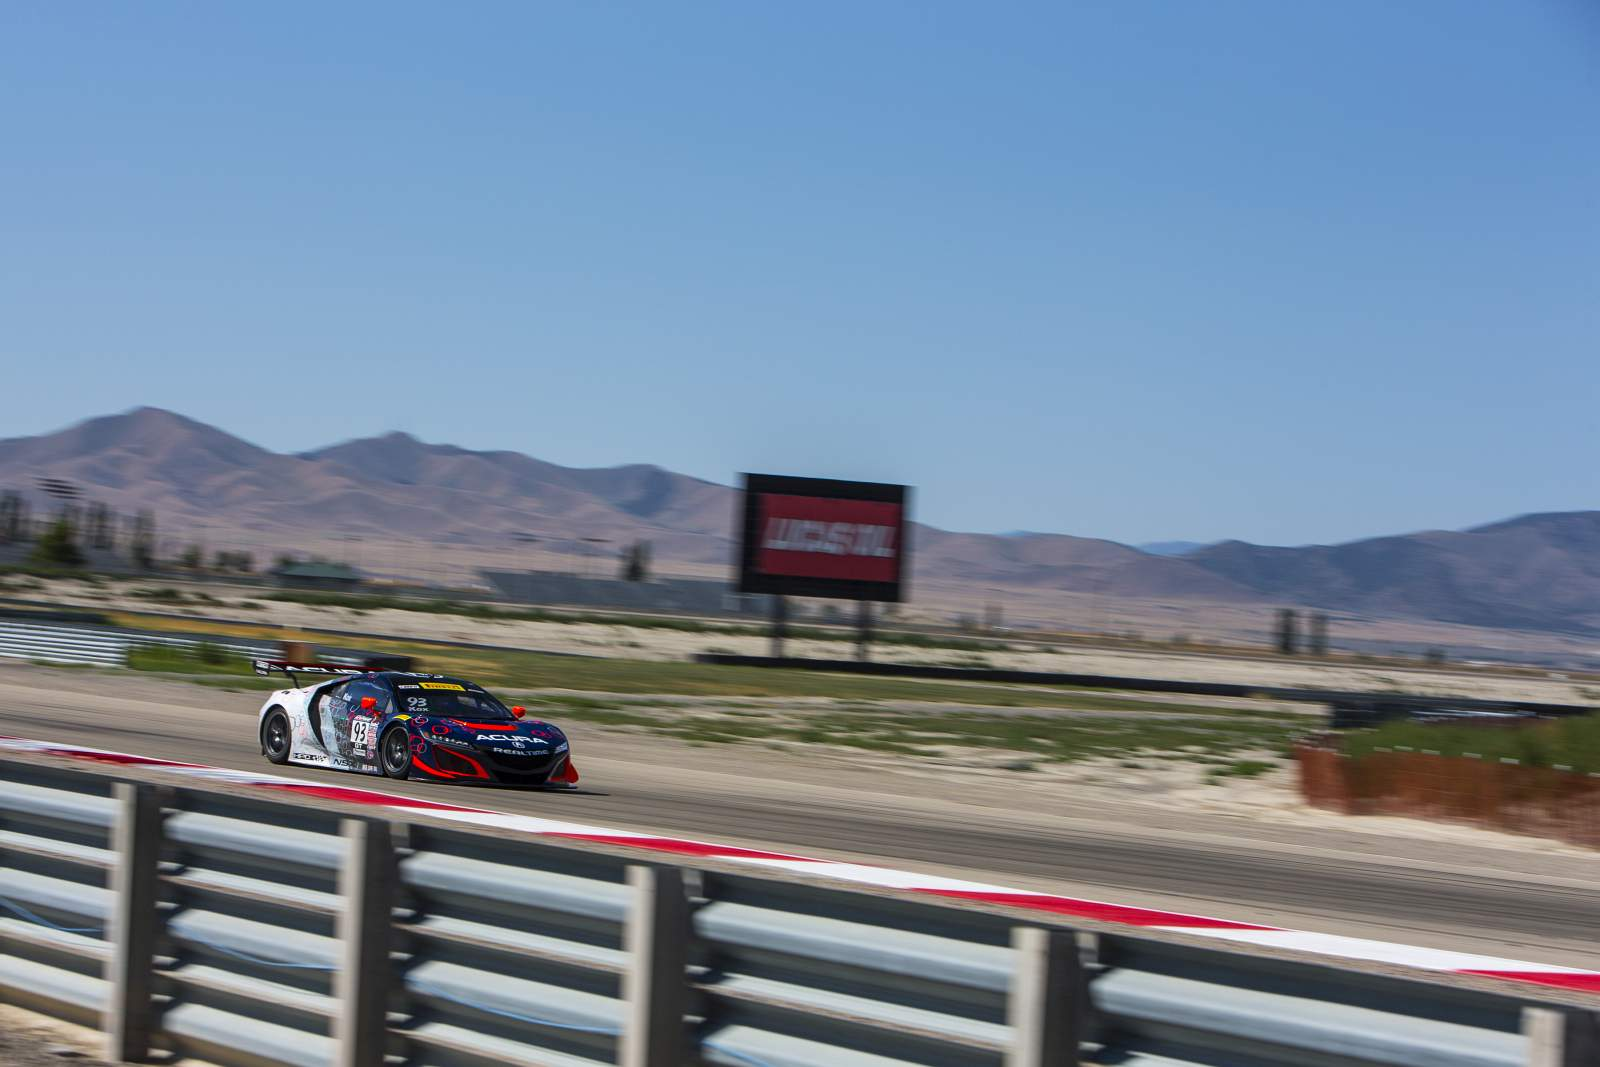 peter-kox-realtime-racing-pirelli-world-challenge-utah-motorsport-campus-31